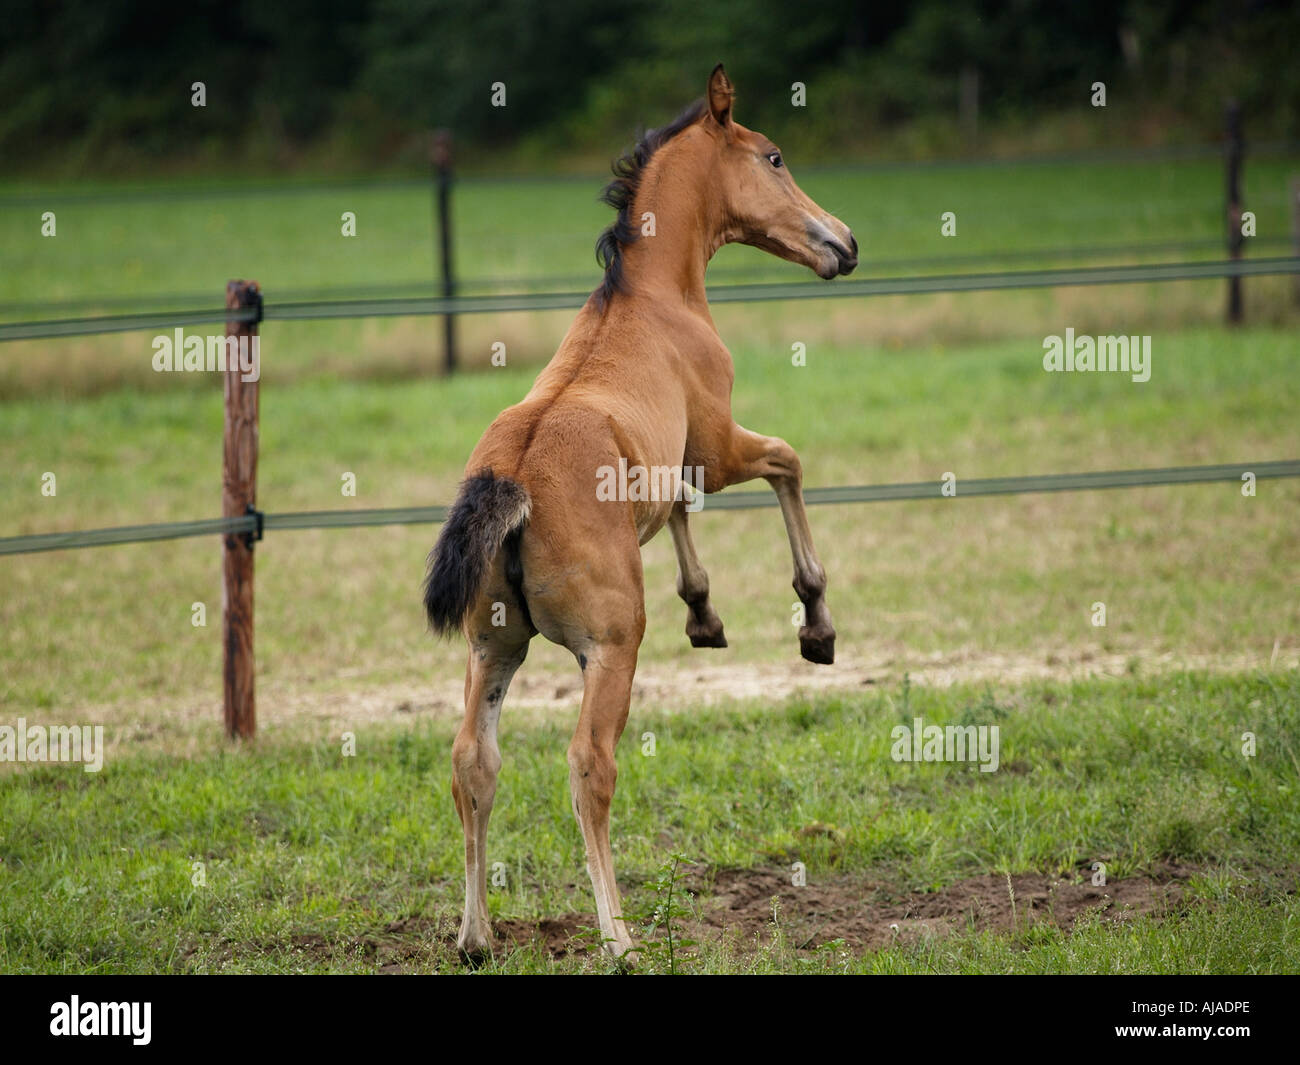 Playful little thoroughbred foal named Bambi Ruurlo Gelderland the Netherlands - Stock Image